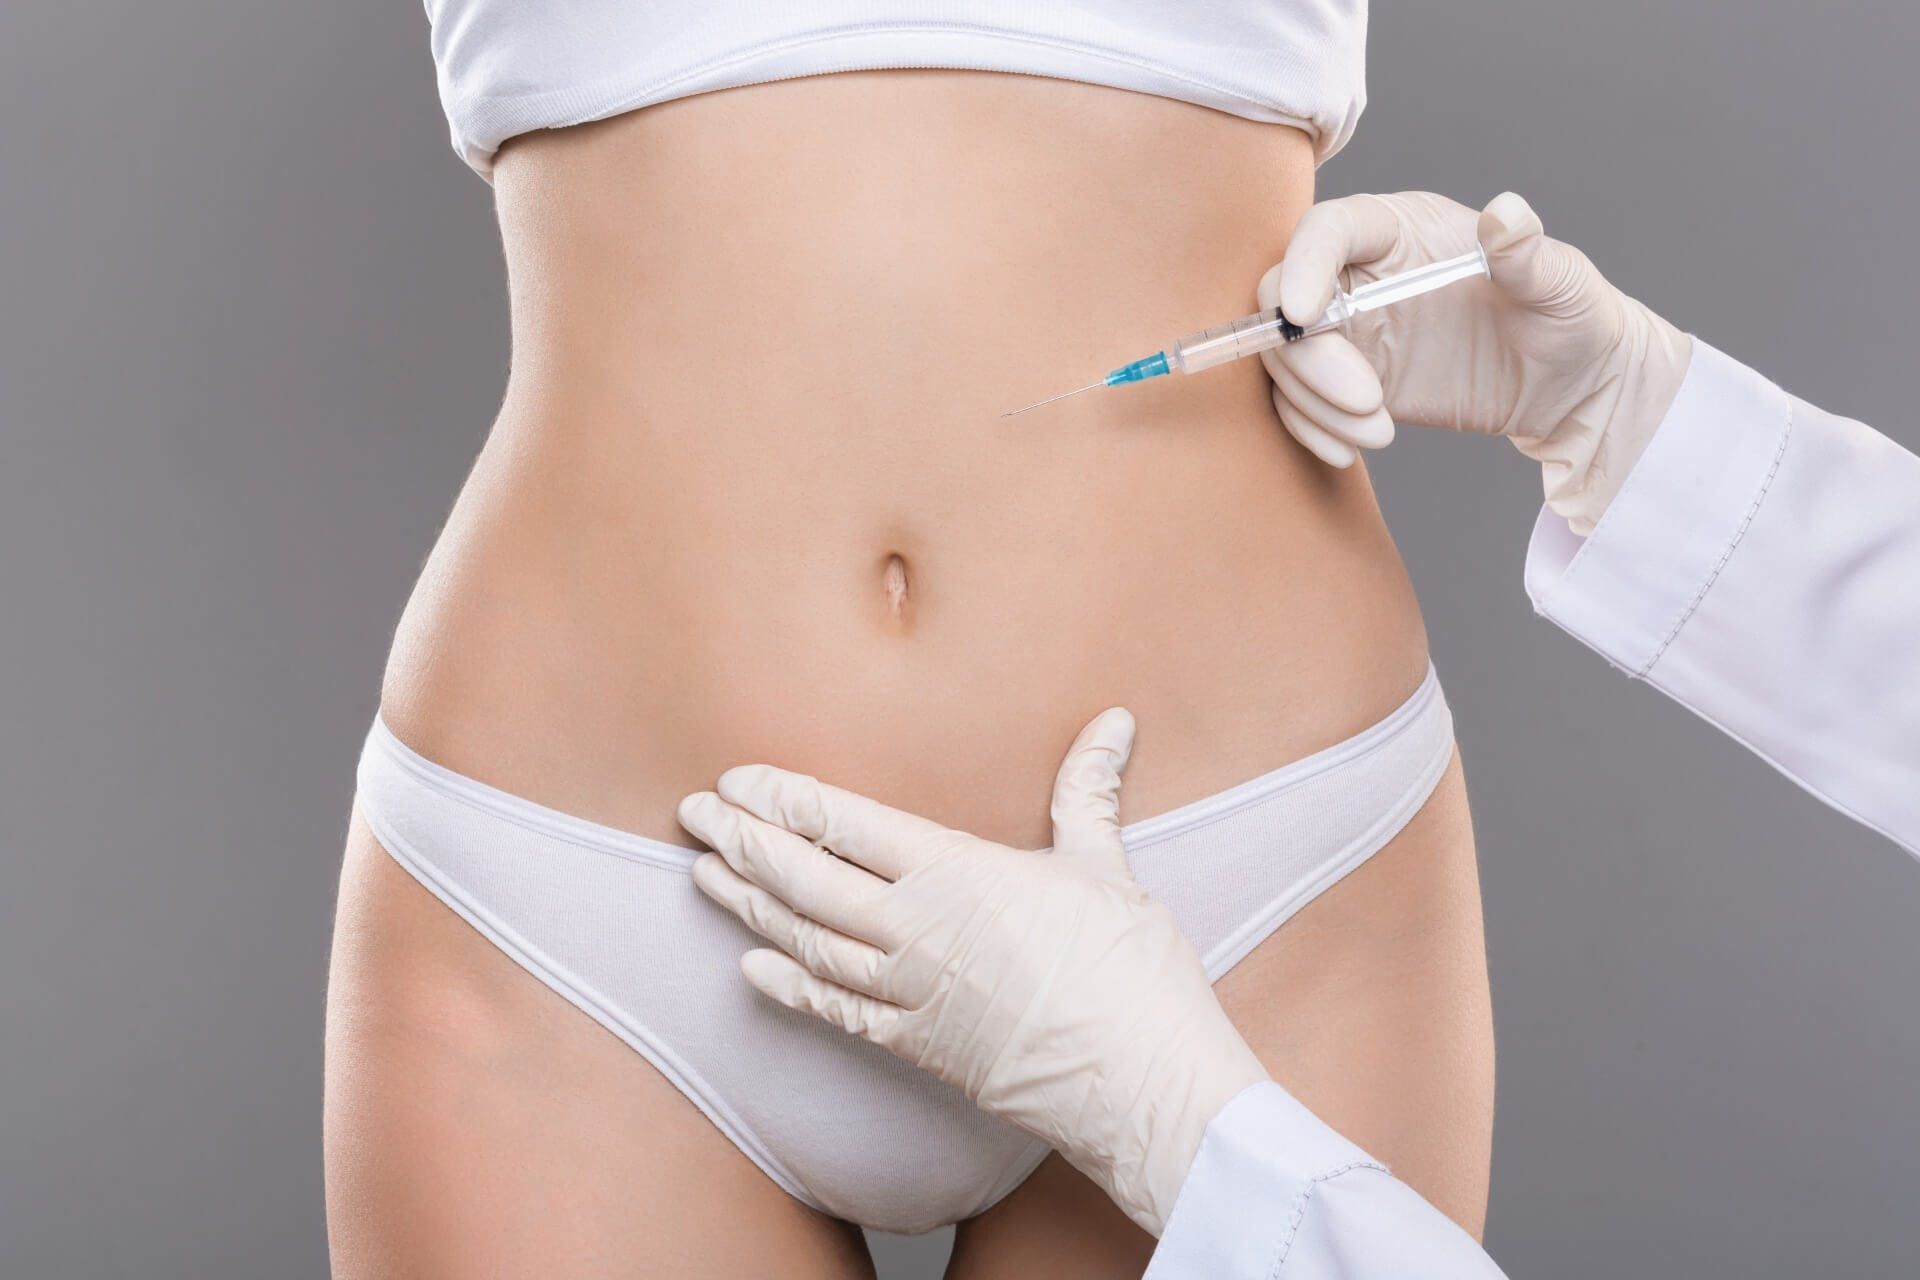 Doctor applying injection to woman's belly